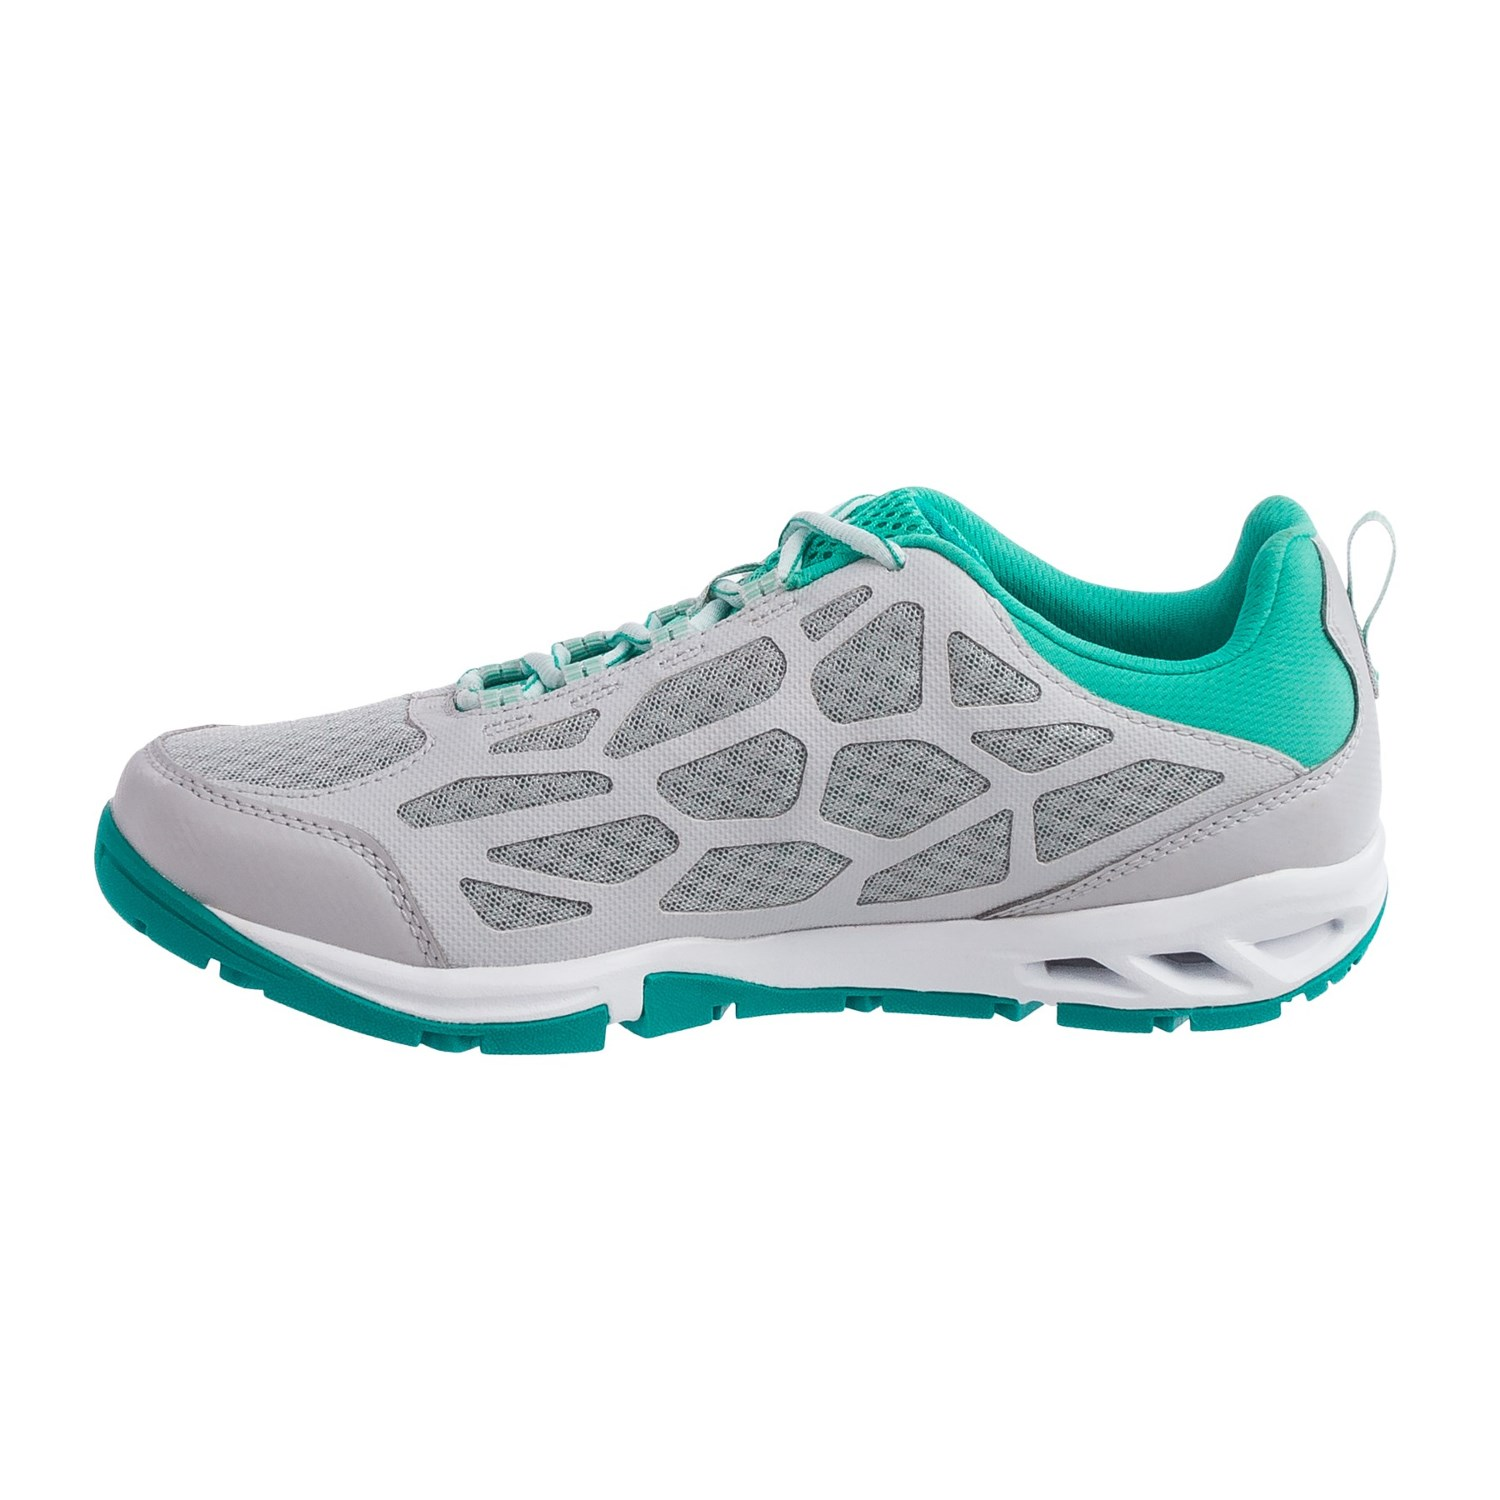 Columbia Sportswear Megavent Shoes For Women Reviews